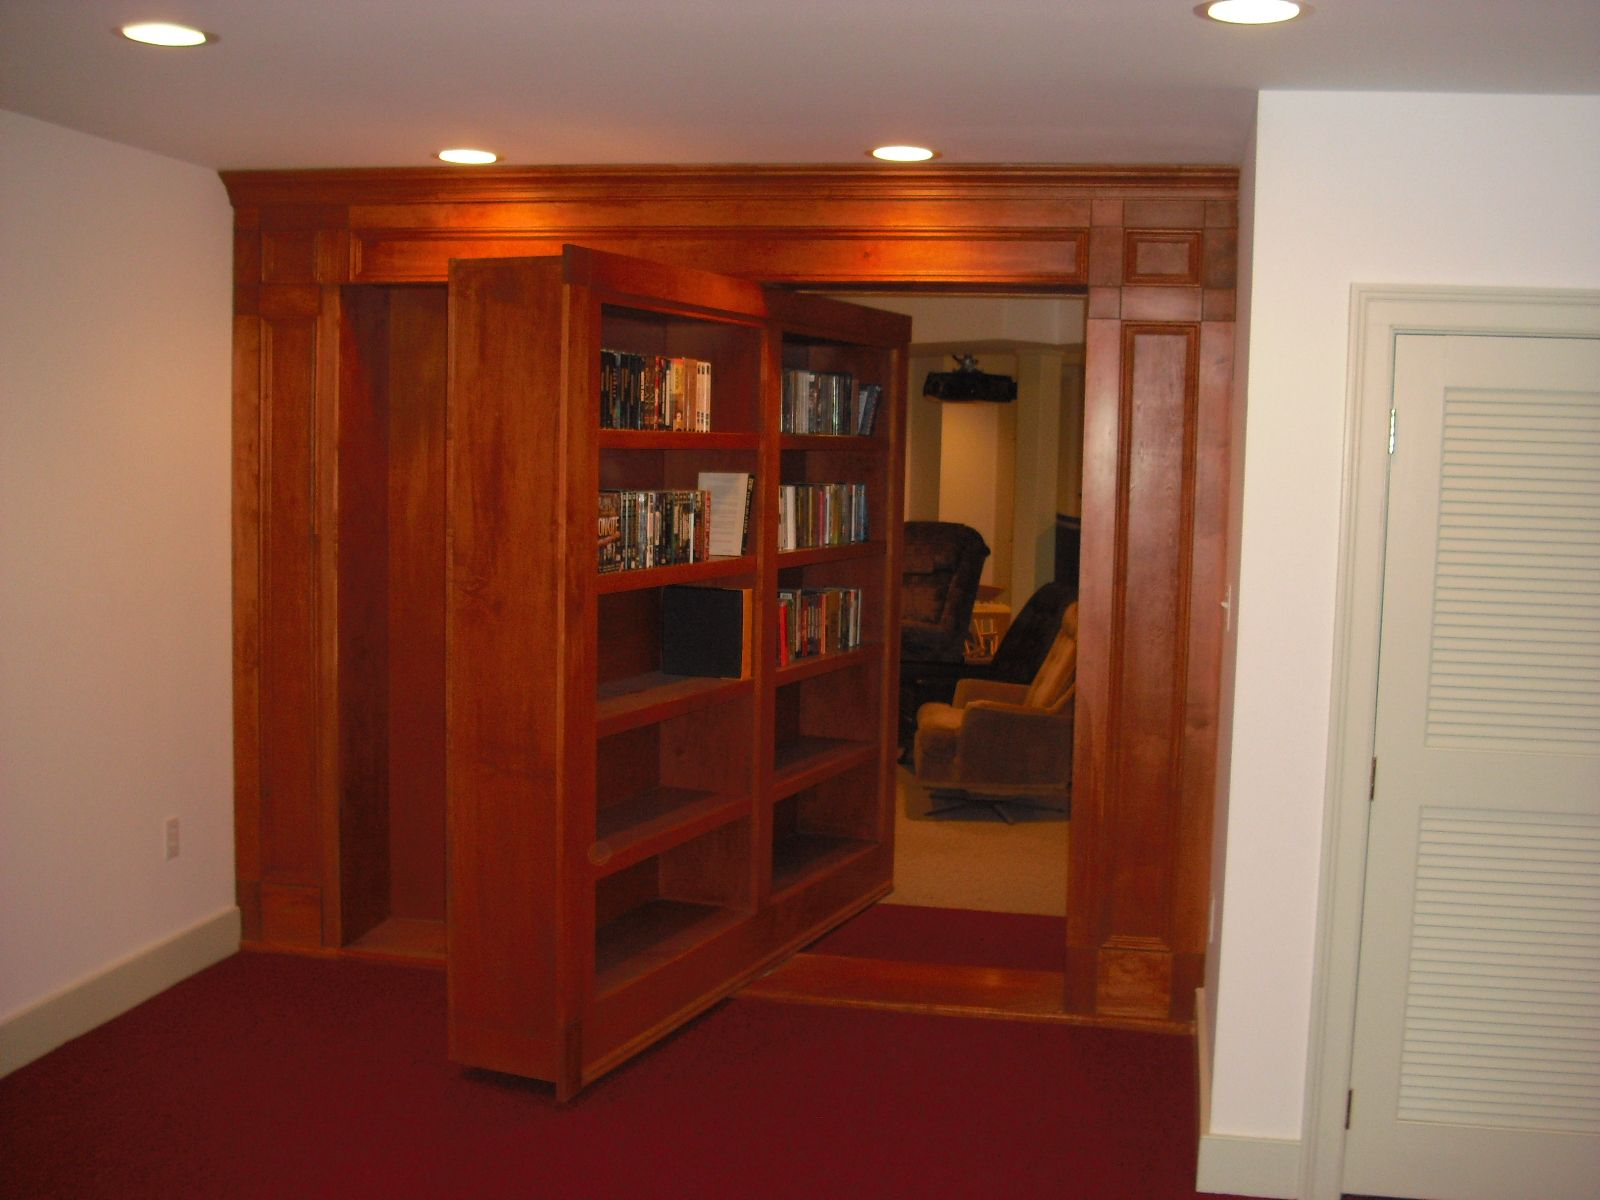 17 Best images about Pivoting Bookcases Dividers on Pinterest   Sliding  doors, Bookcase door and Bookcase wall